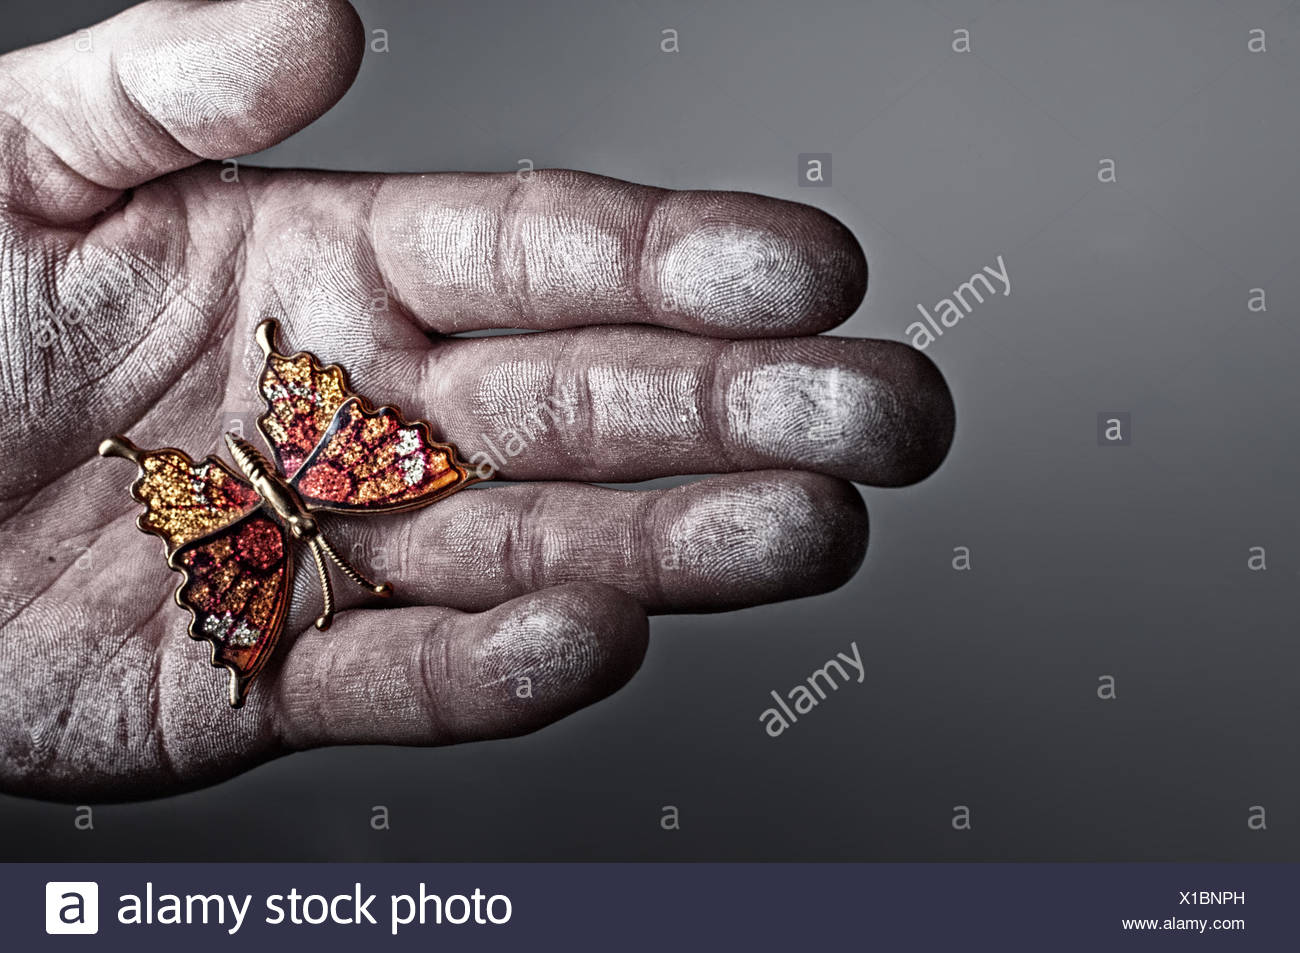 USA, Idaho, Ada County, Boise, Man holding hand made butterfly gift in hand - Stock Image